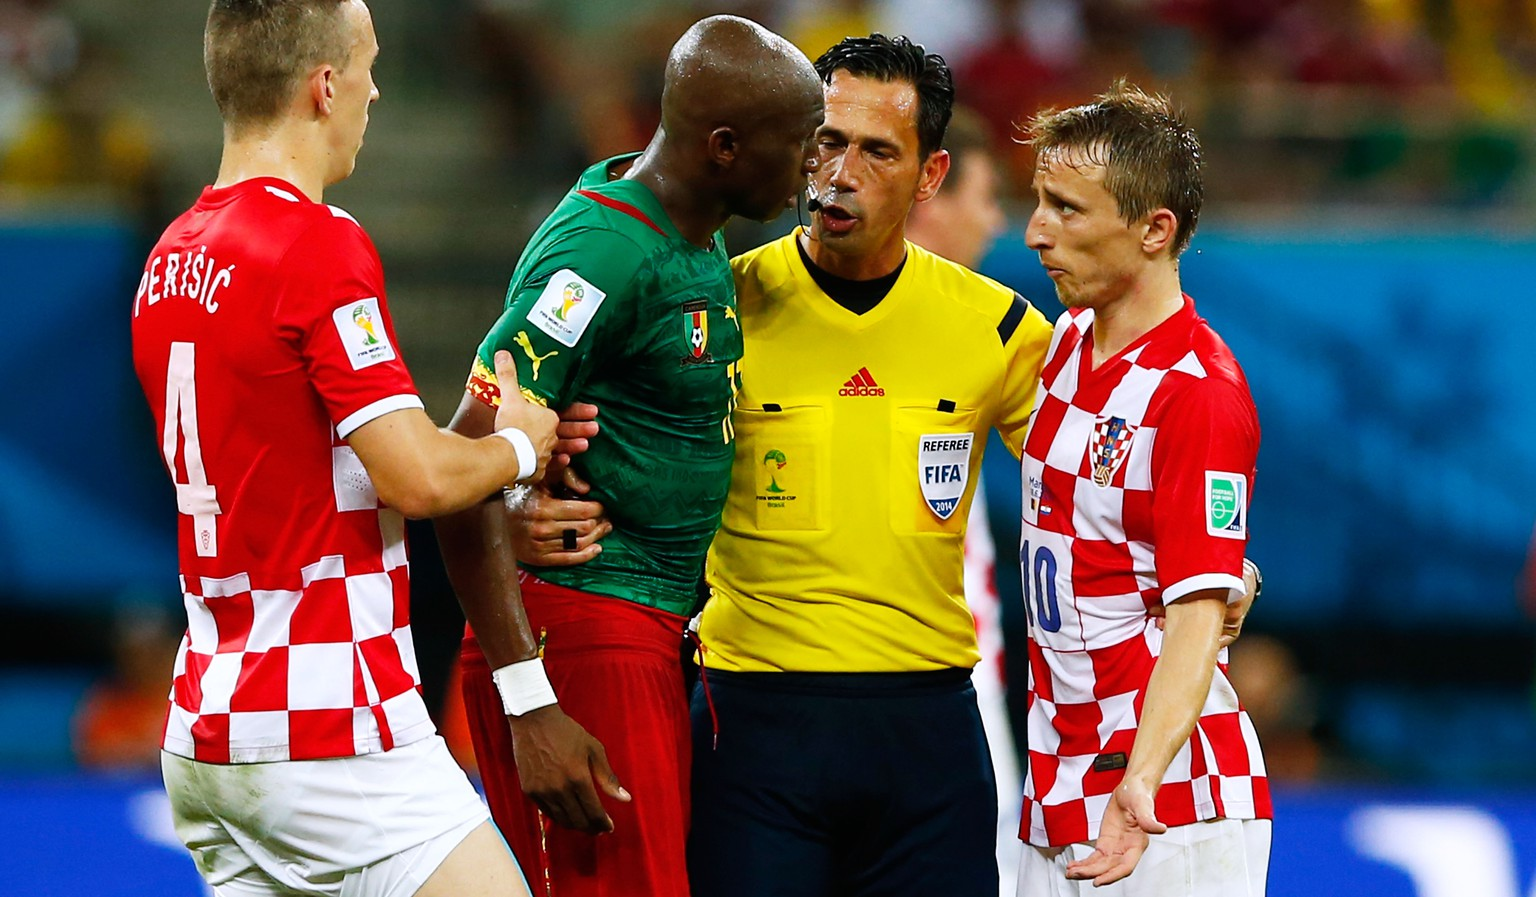 MANAUS, BRAZIL - JUNE 18: Referee Pedro Proenca separates Stephane Mbia of Cameroon and Luka Modric of Croatia during the 2014 FIFA World Cup Brazil Group A match between Cameroon and Croatia at Arena Amazonia on June 18, 2014 in Manaus, Brazil.  (Photo by Matthew Lewis/Getty Images)